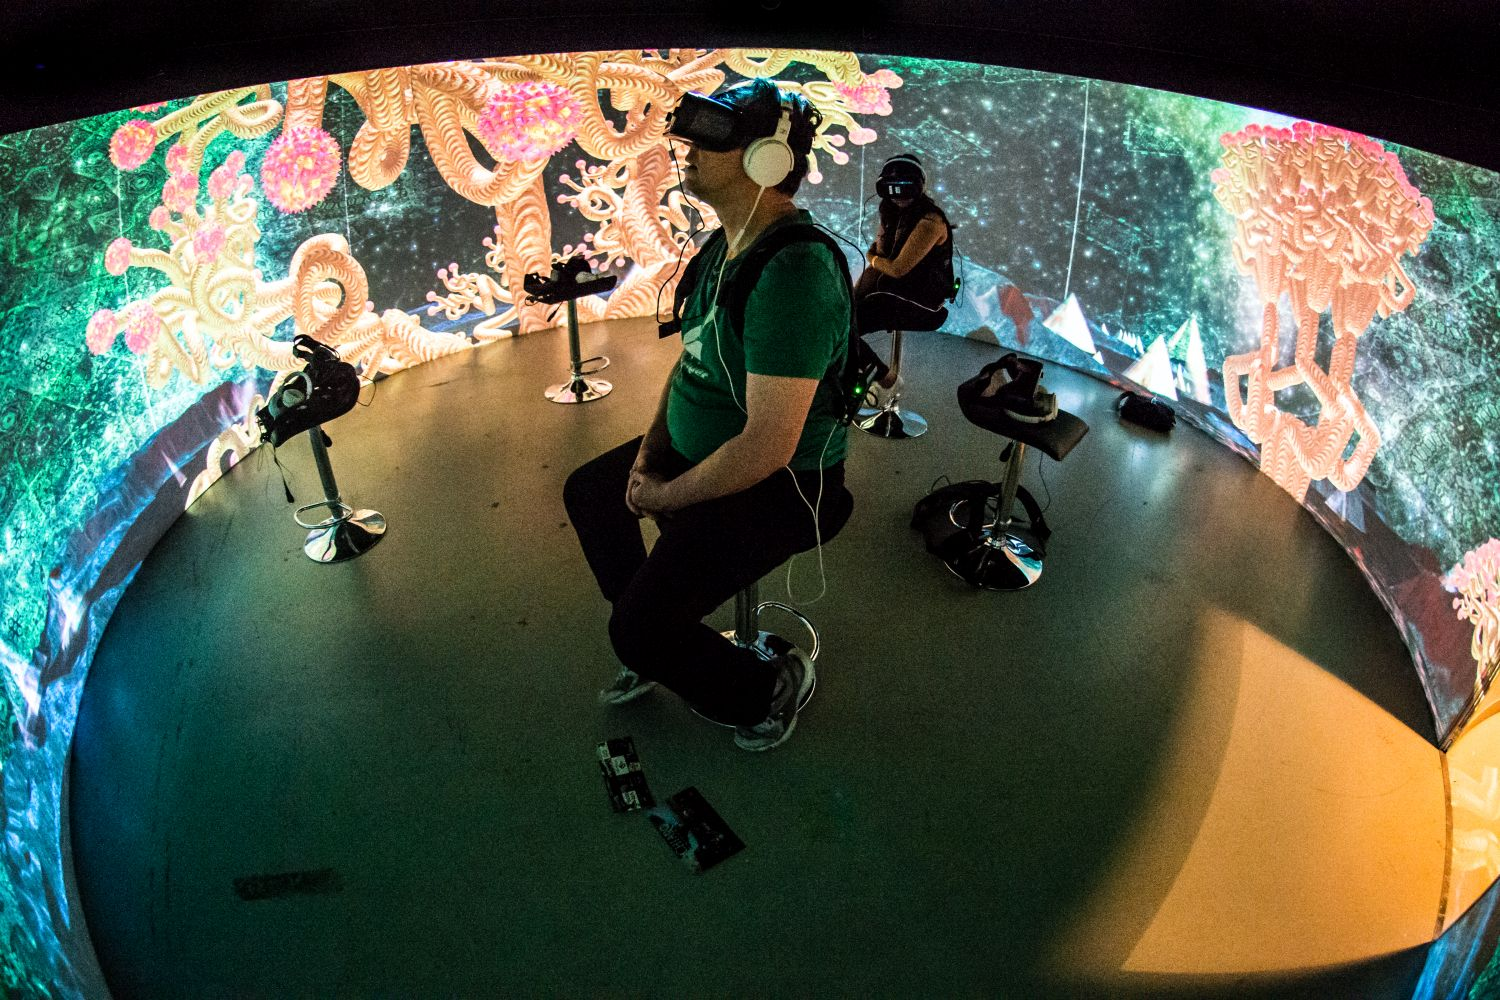 FIVARS in the Igloo Vision Theater featuring Subpac and Gear 360